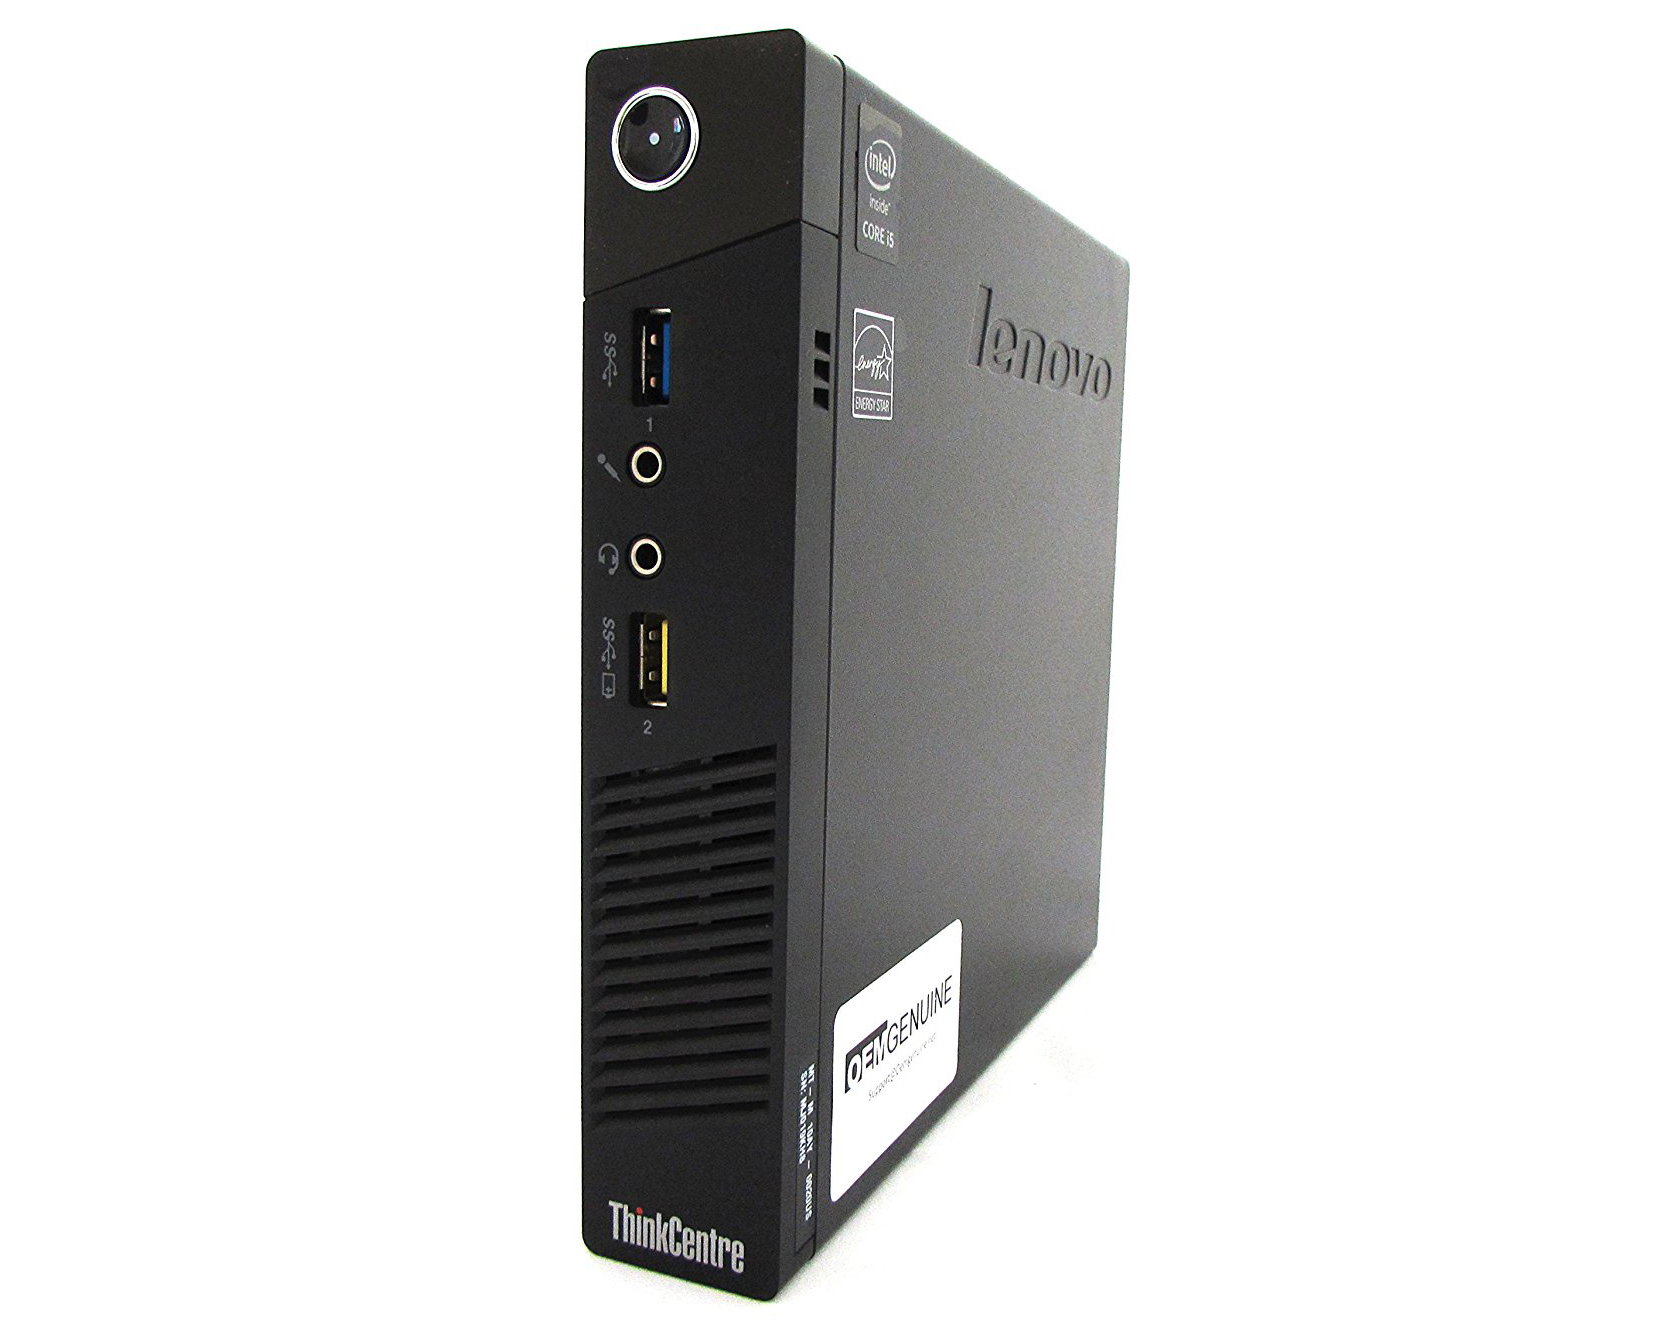 Lenovo ThinkCentre M73 i5-4590T 16GB RAM 250GB SSD Windows 7